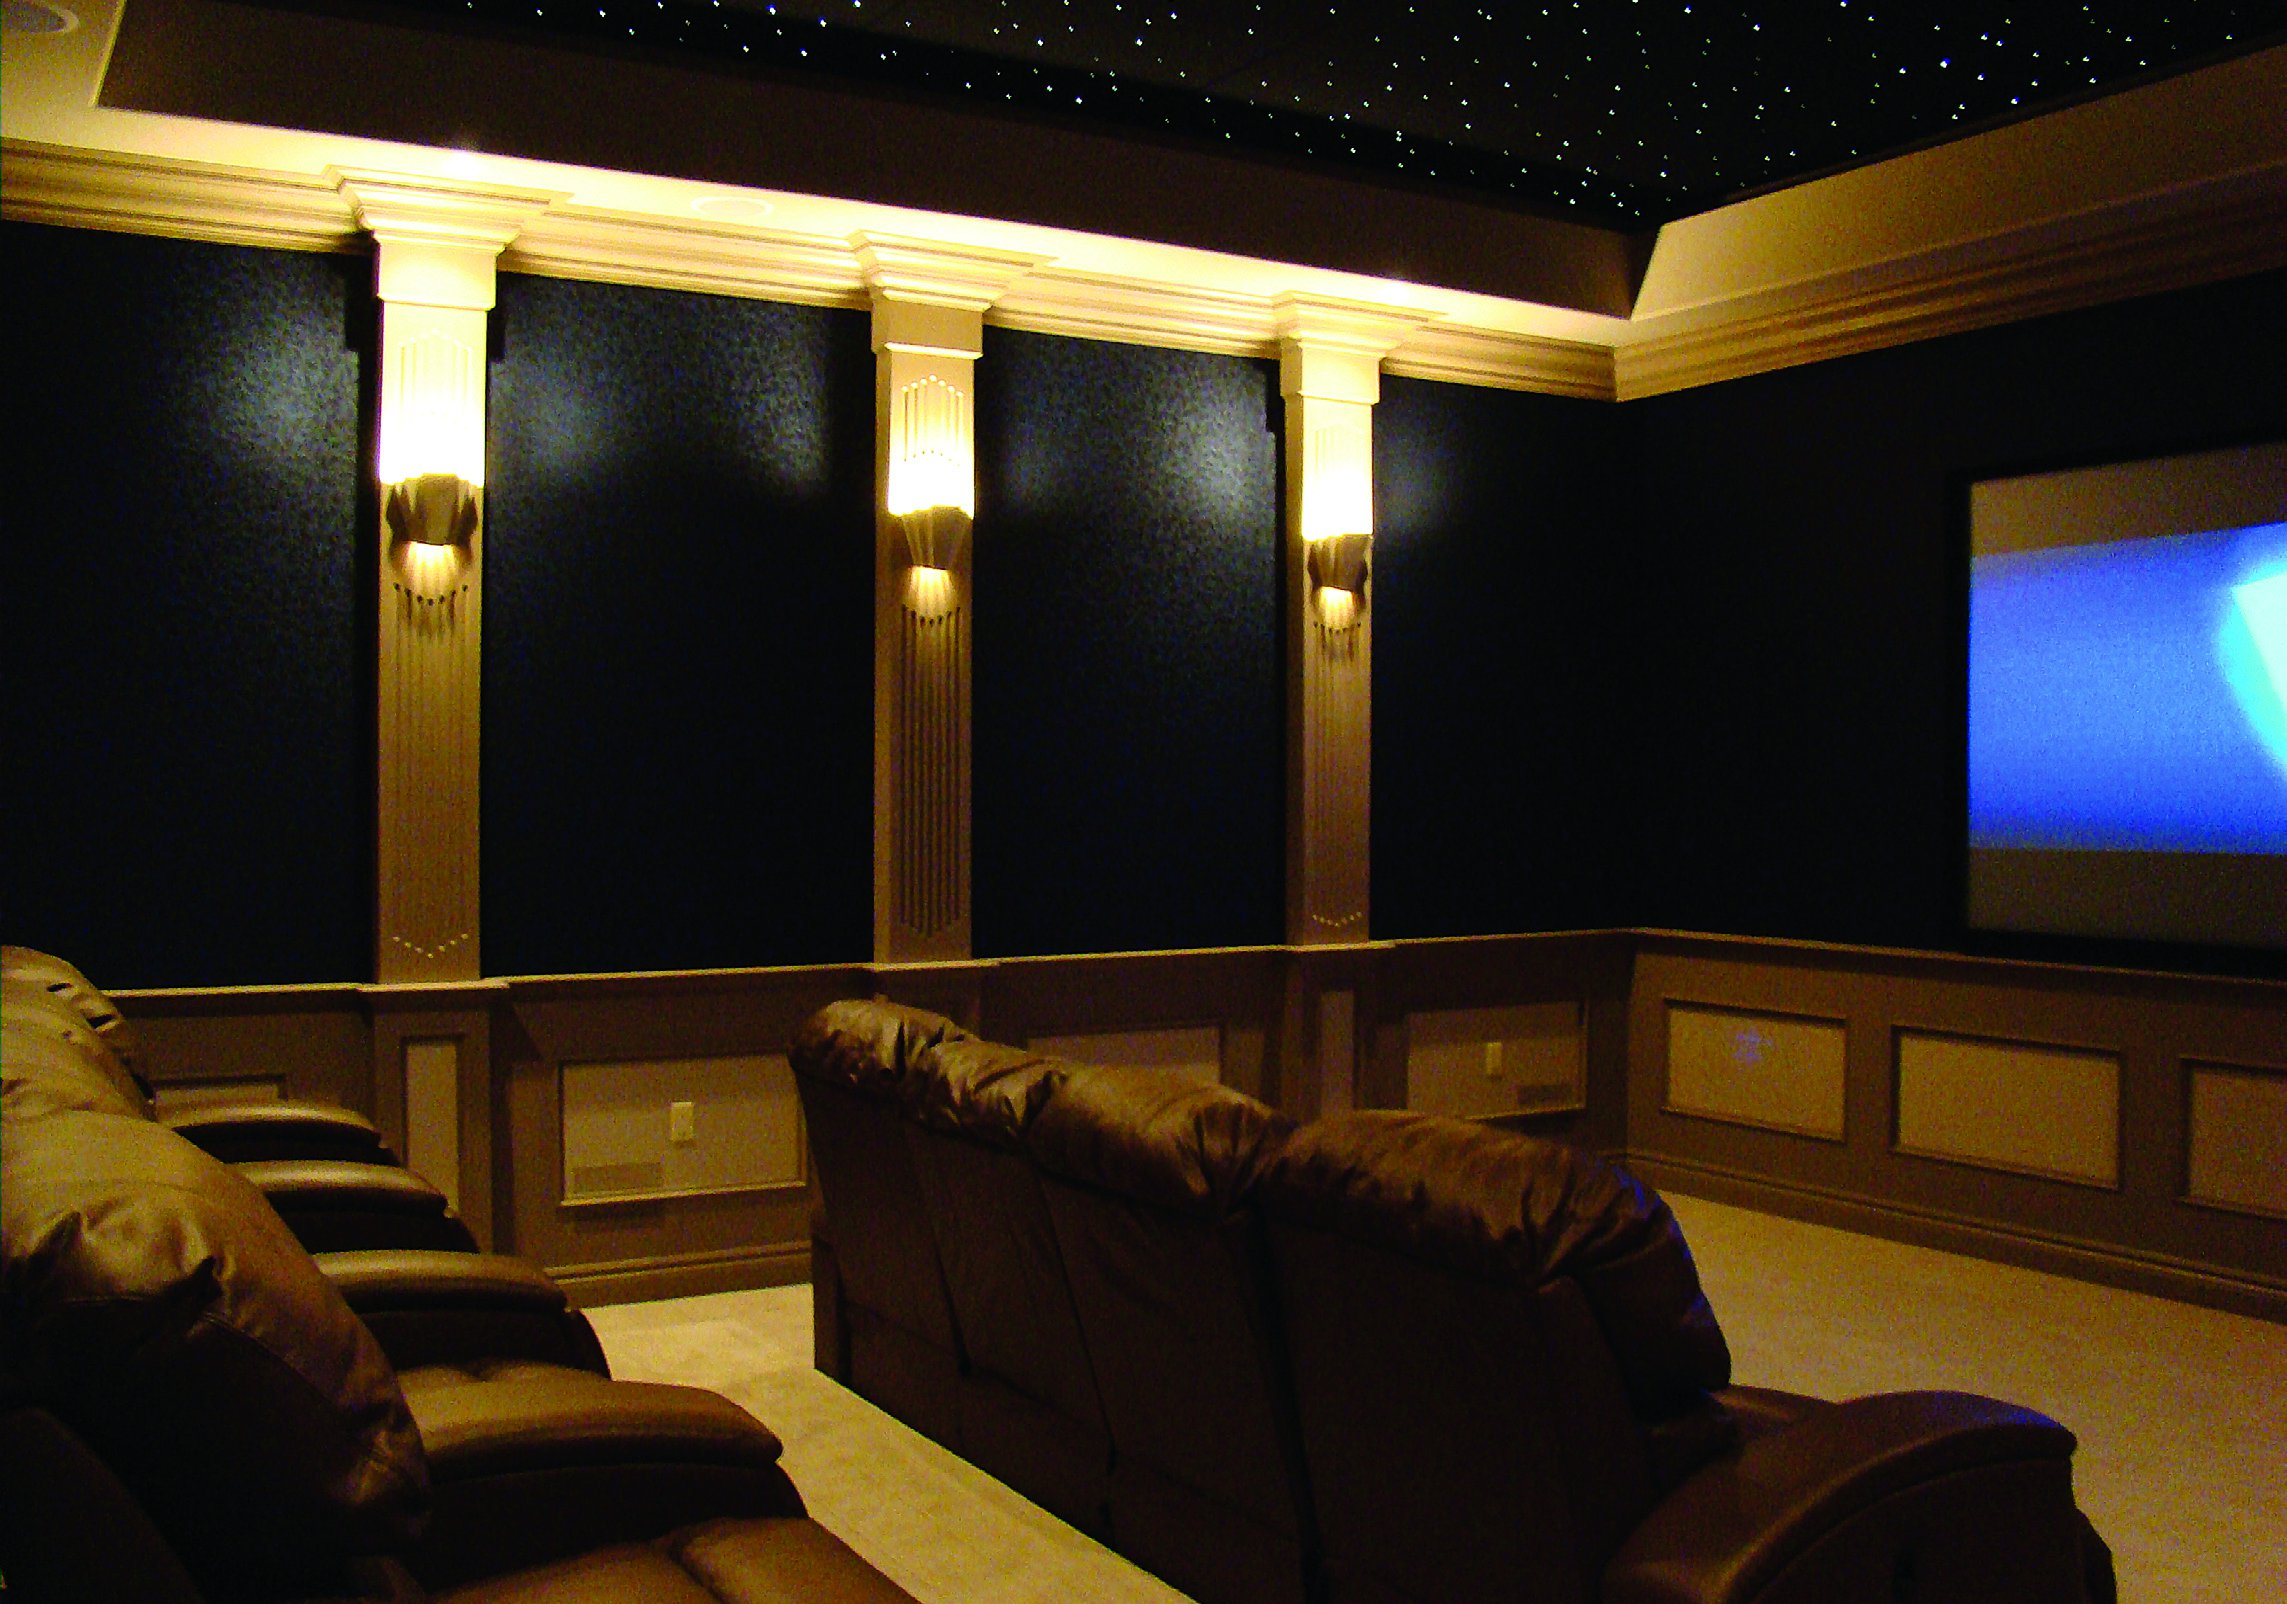 custom home theater design joy studio design gallery photo. Black Bedroom Furniture Sets. Home Design Ideas